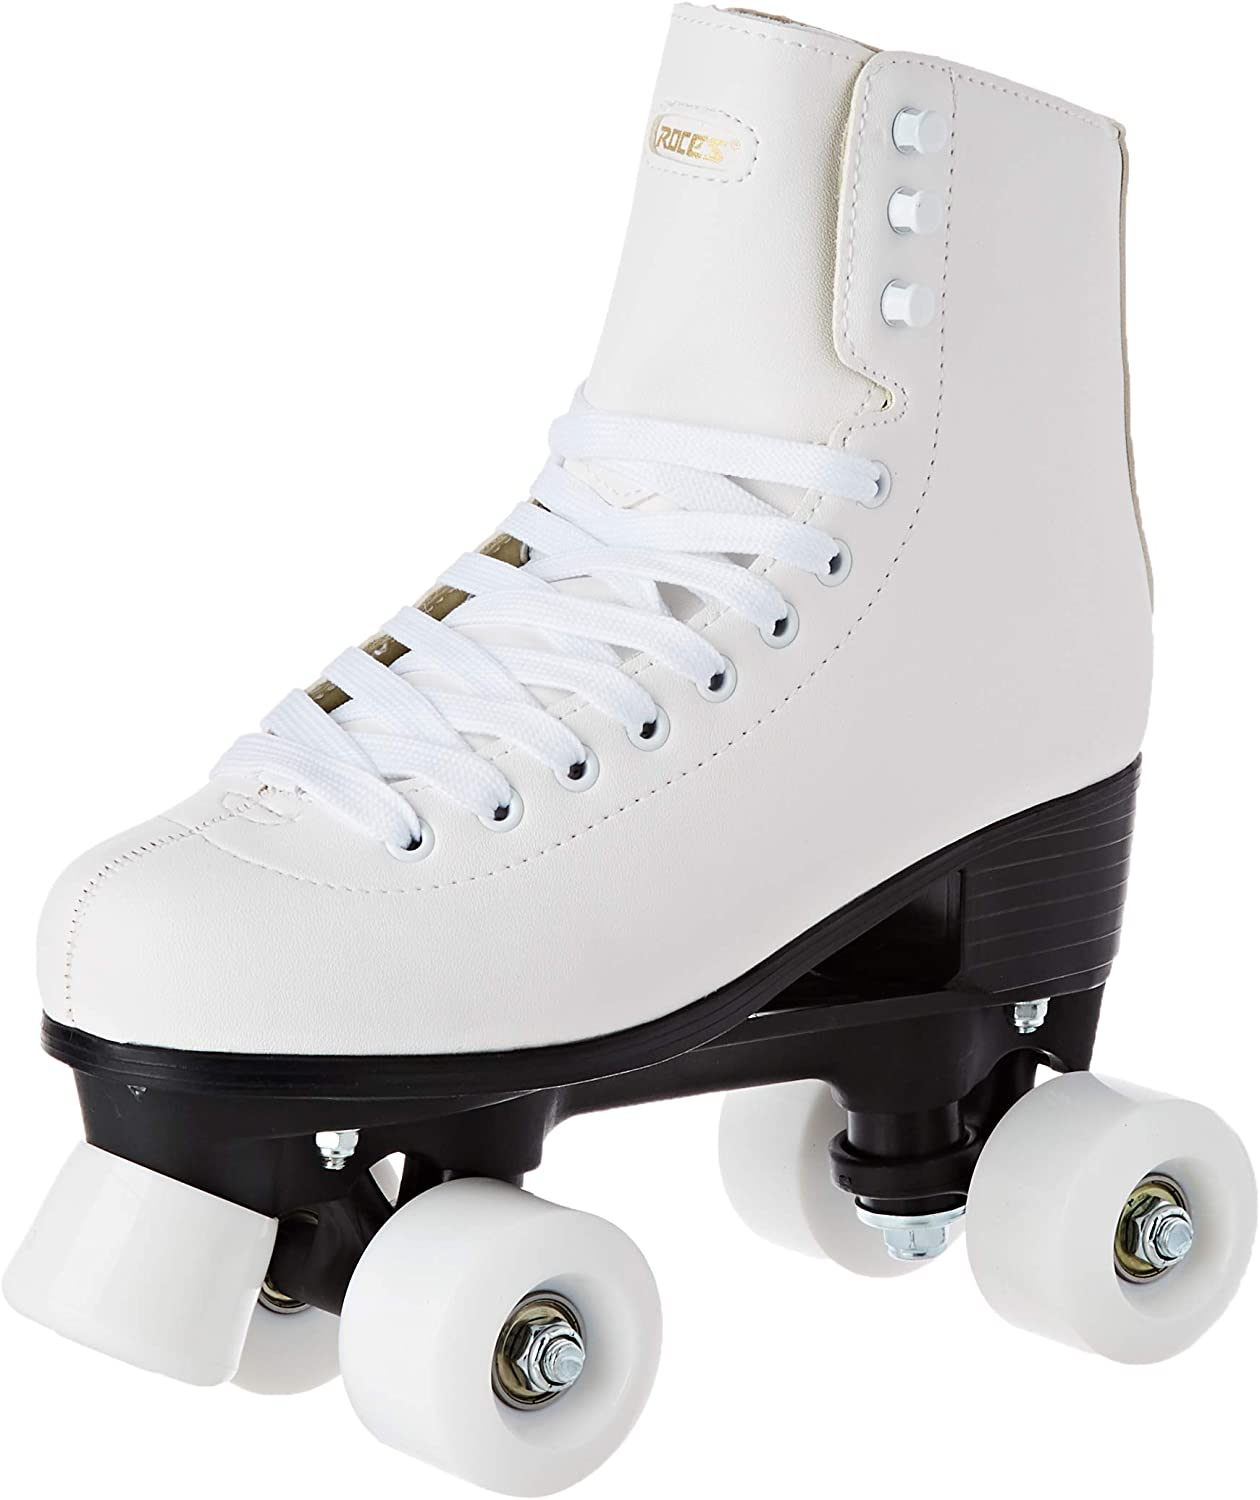 Roces RC1 Classic Roller Skates Artistic, Quad 4 Wheels Skating, for Man and Woman, Unisex, Adult / Uk